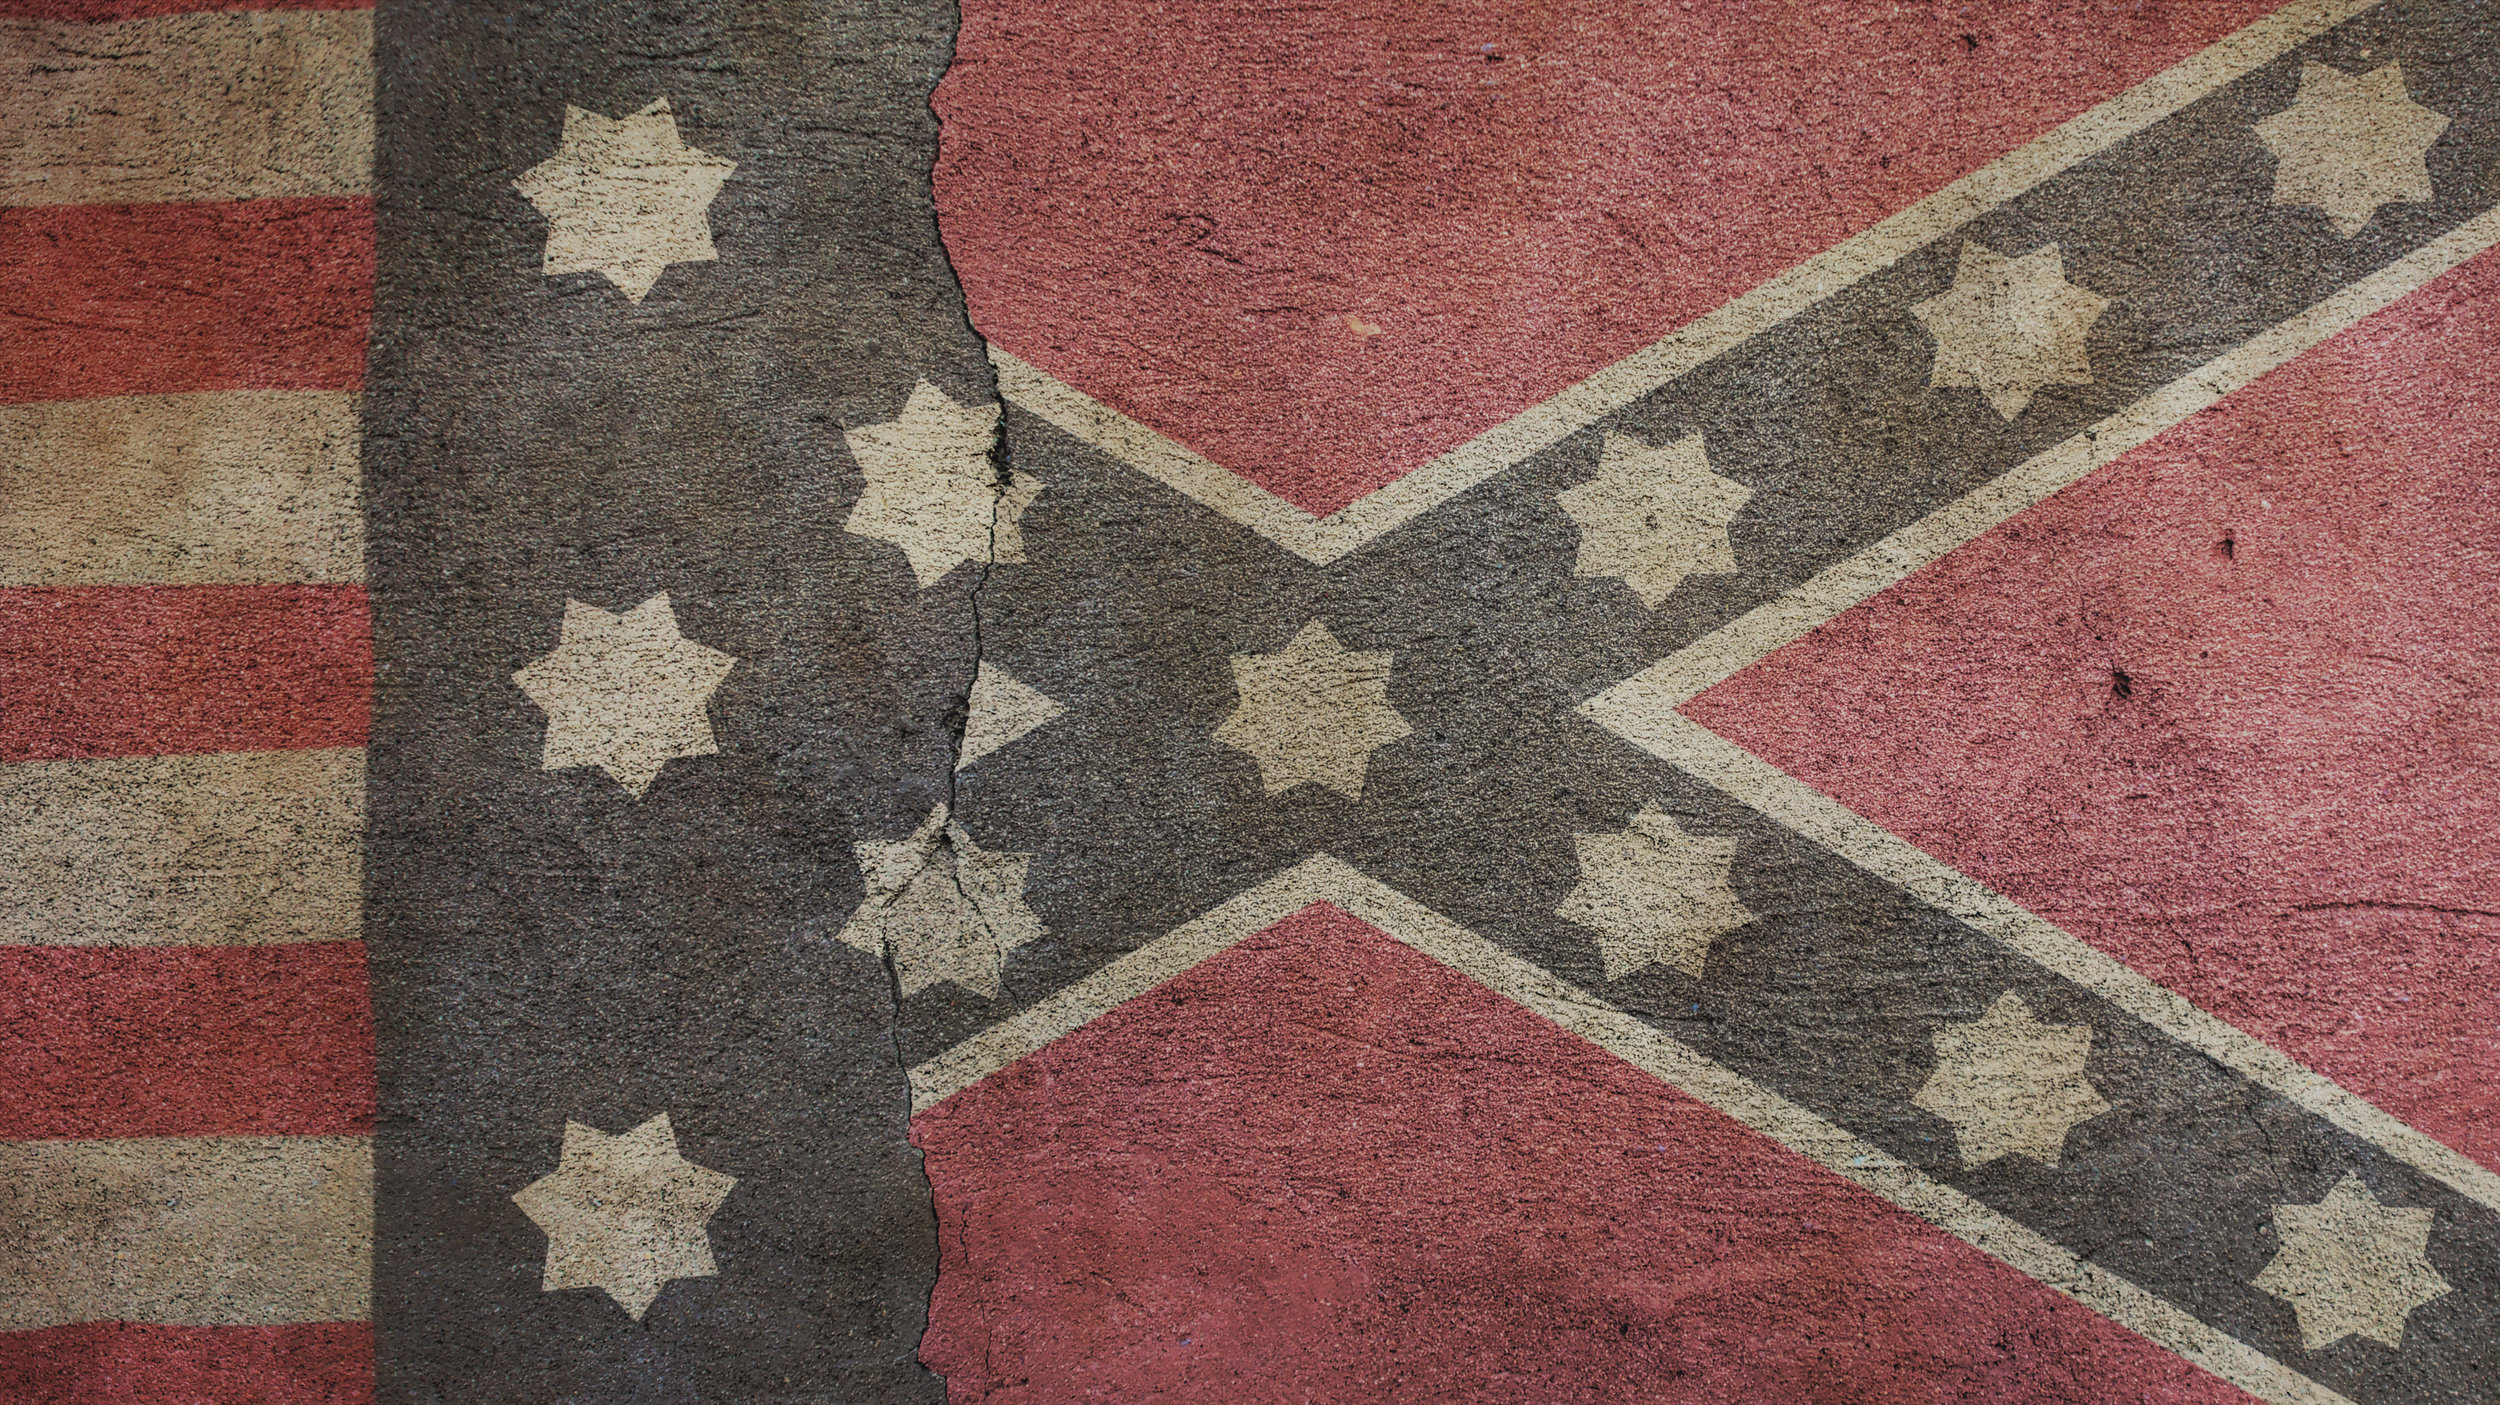 Confederate Flag and Union Flag on Cracked Concrete